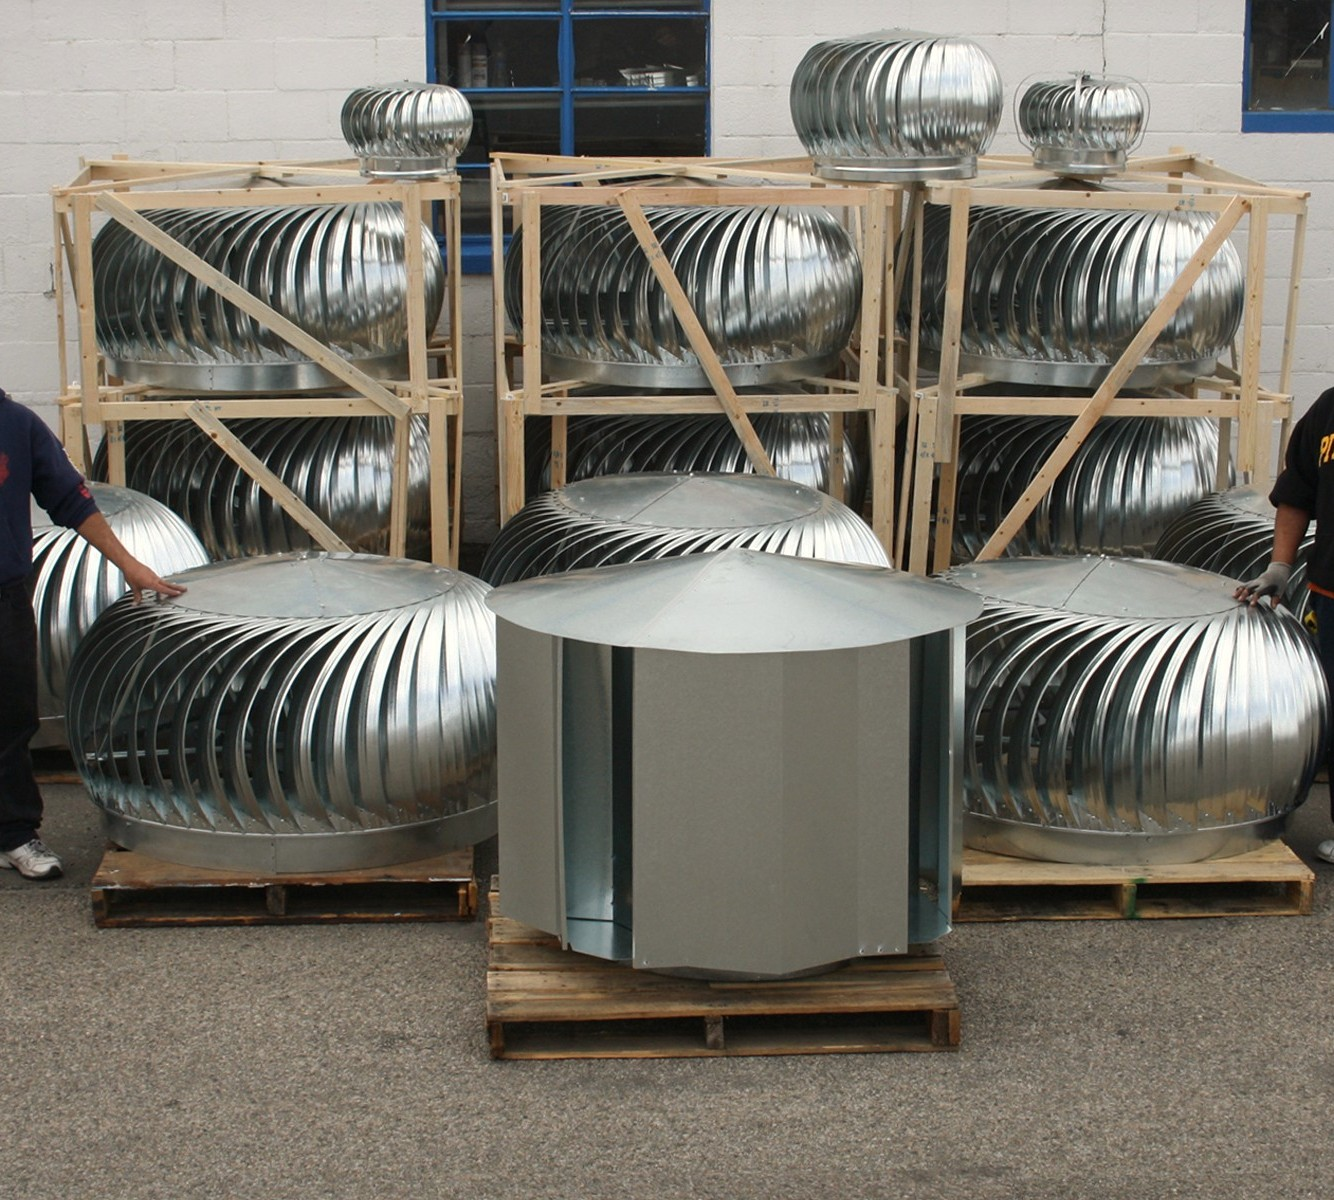 large commercial roof turbine vents - Turbine Roof Vents